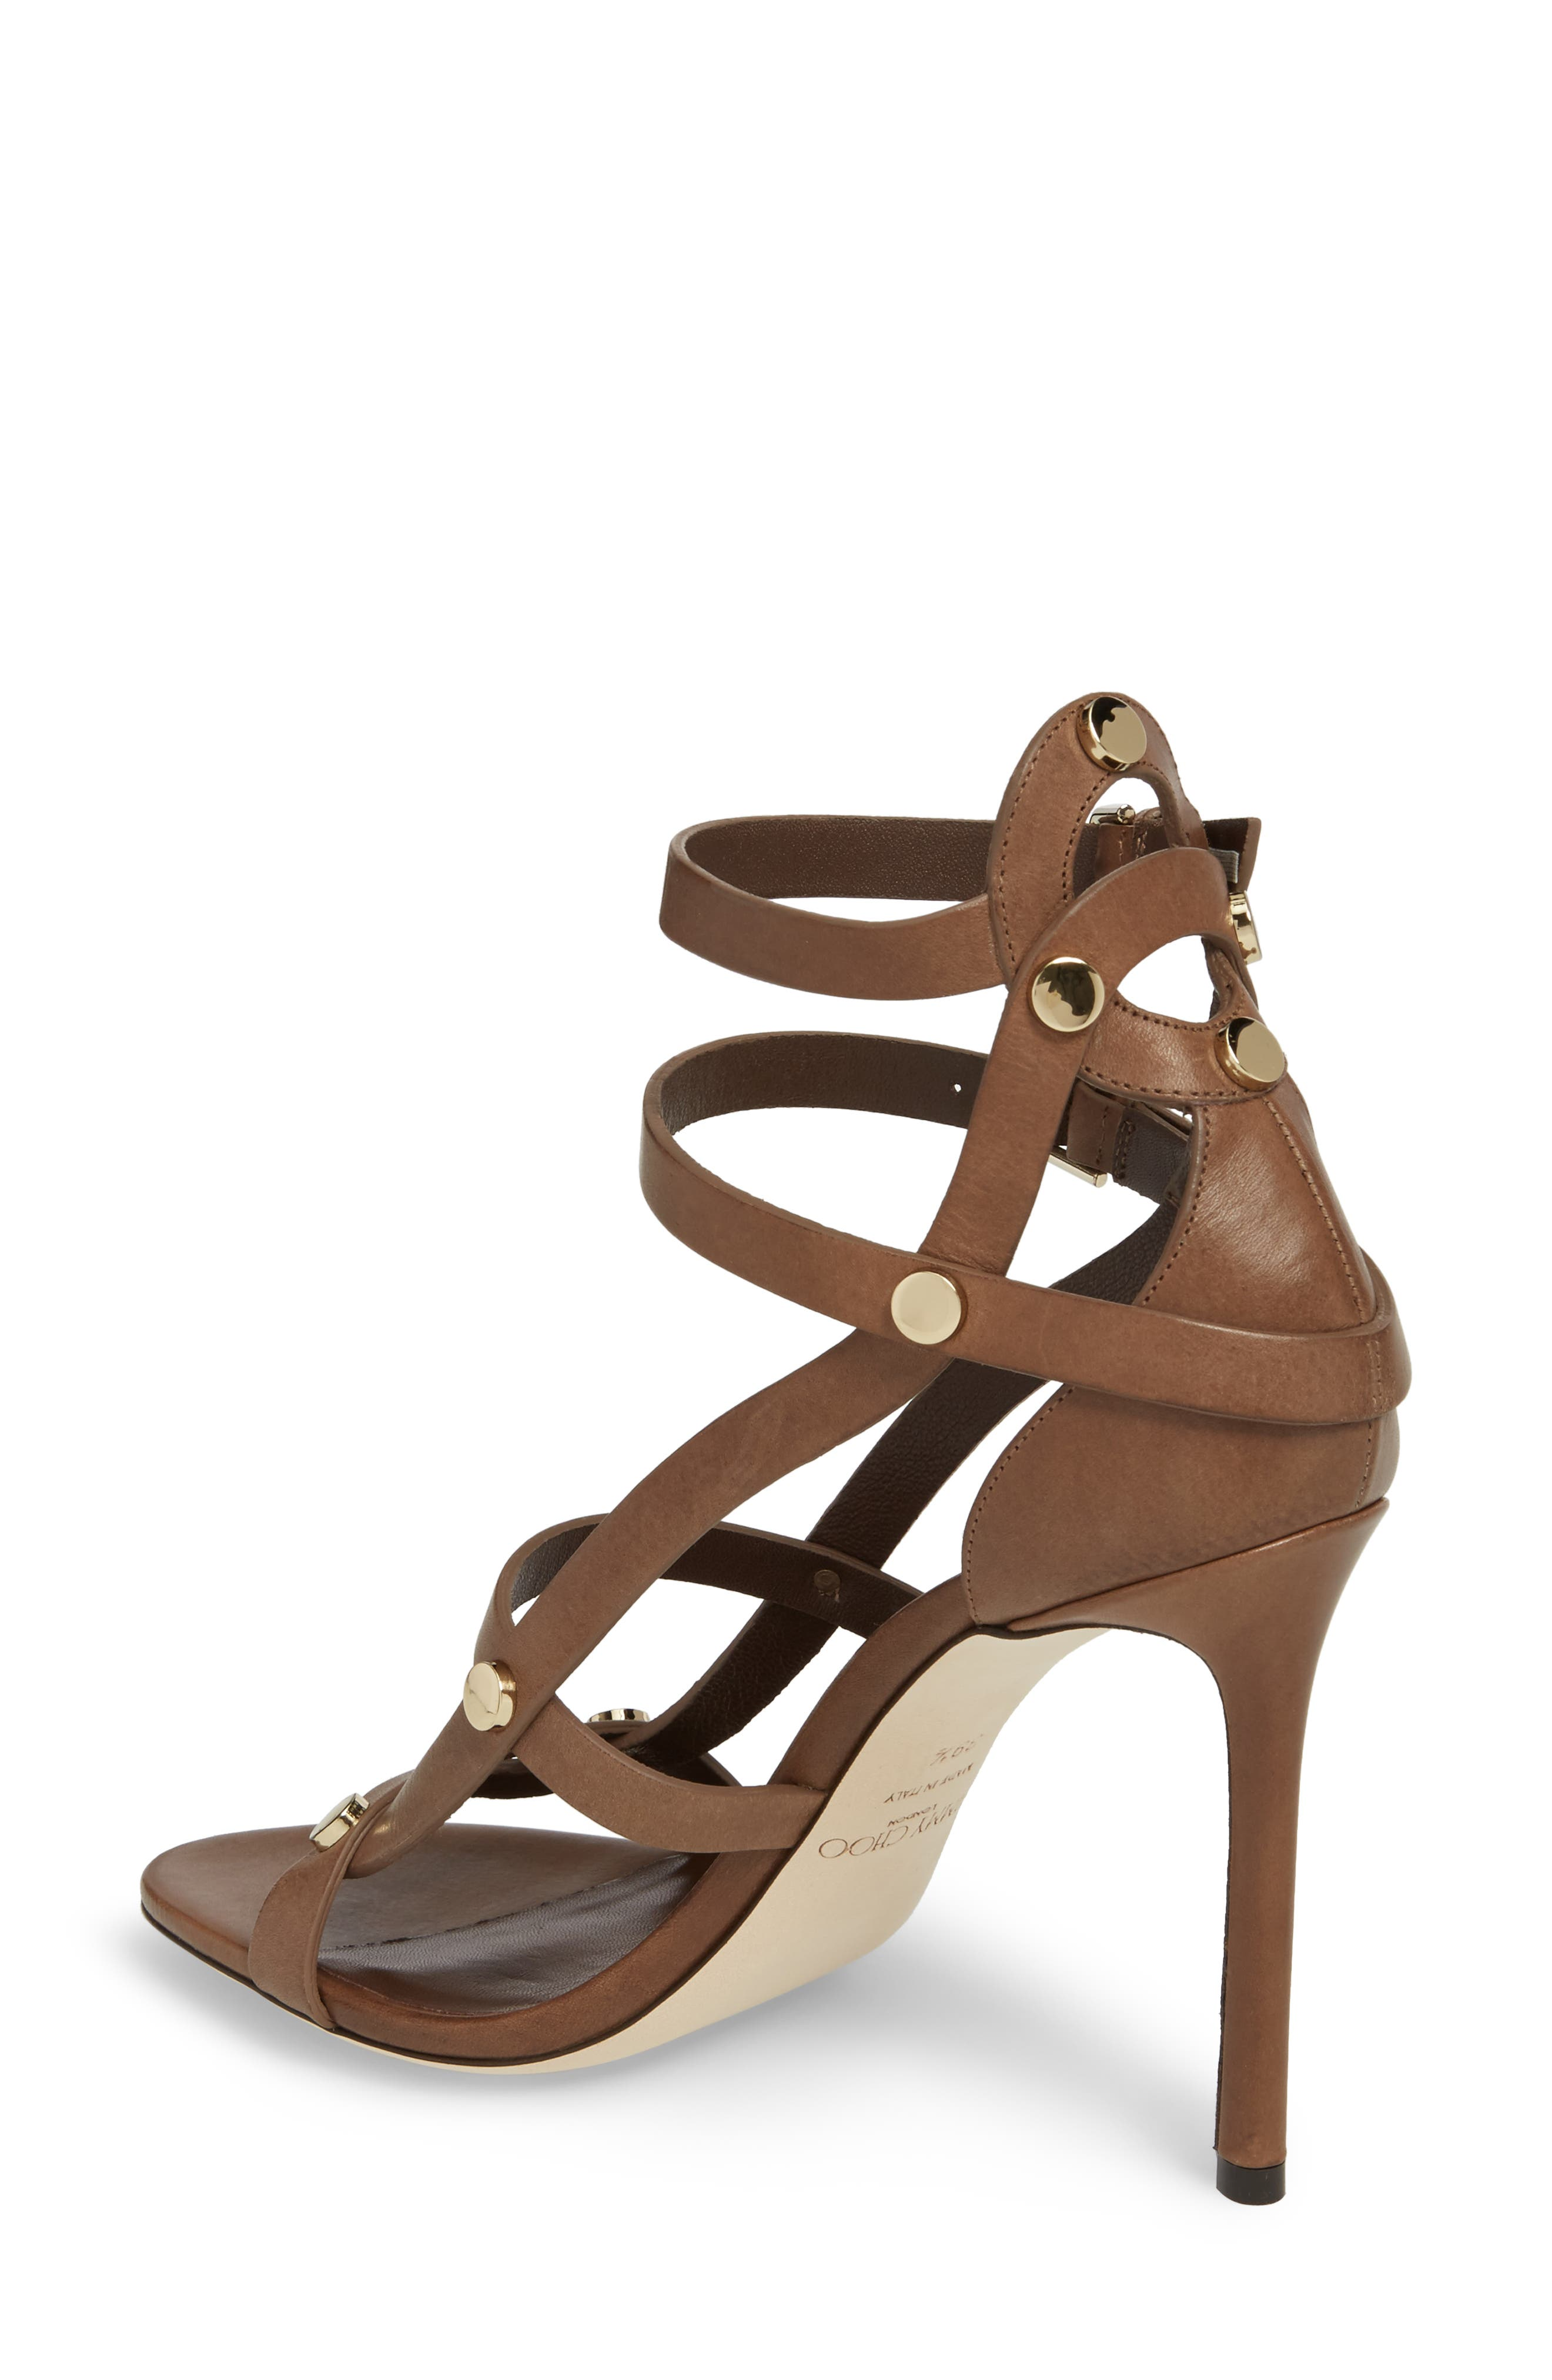 Motoko Studded Cage Sandal,                             Alternate thumbnail 2, color,                             Cacao Brown